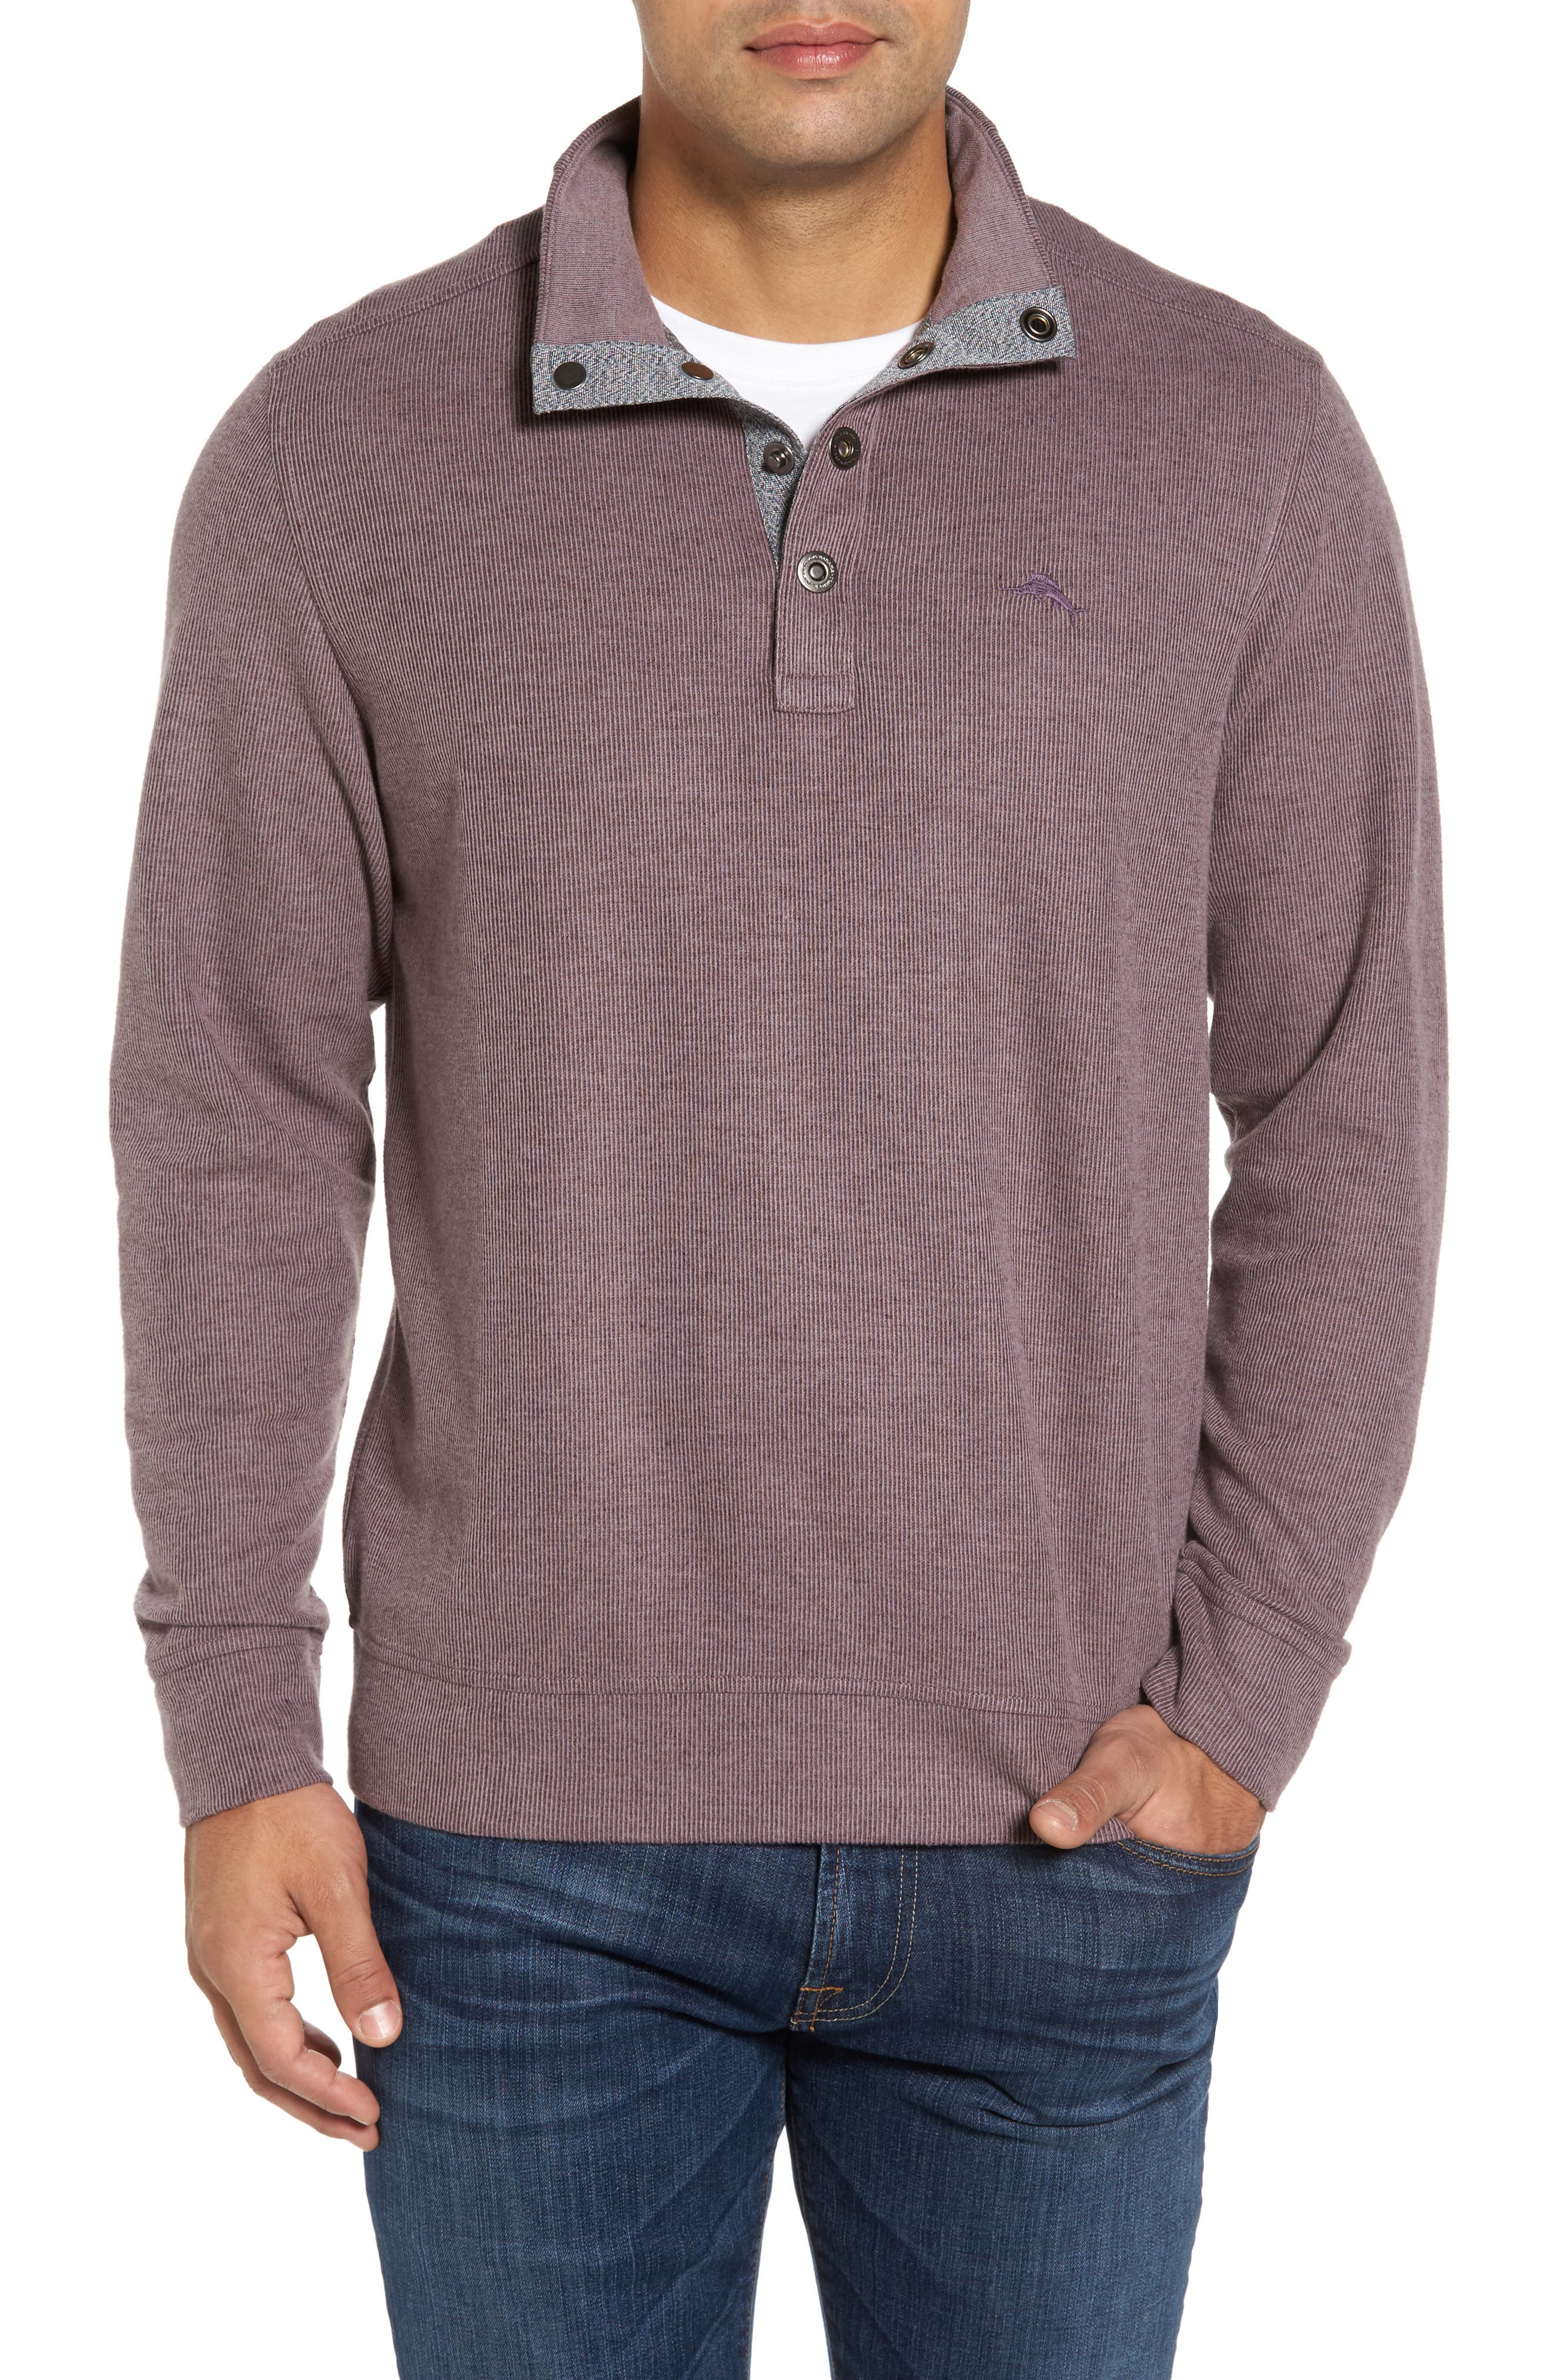 Cold Springs Snap Mock Neck Sweater,                             Main thumbnail 6, color,